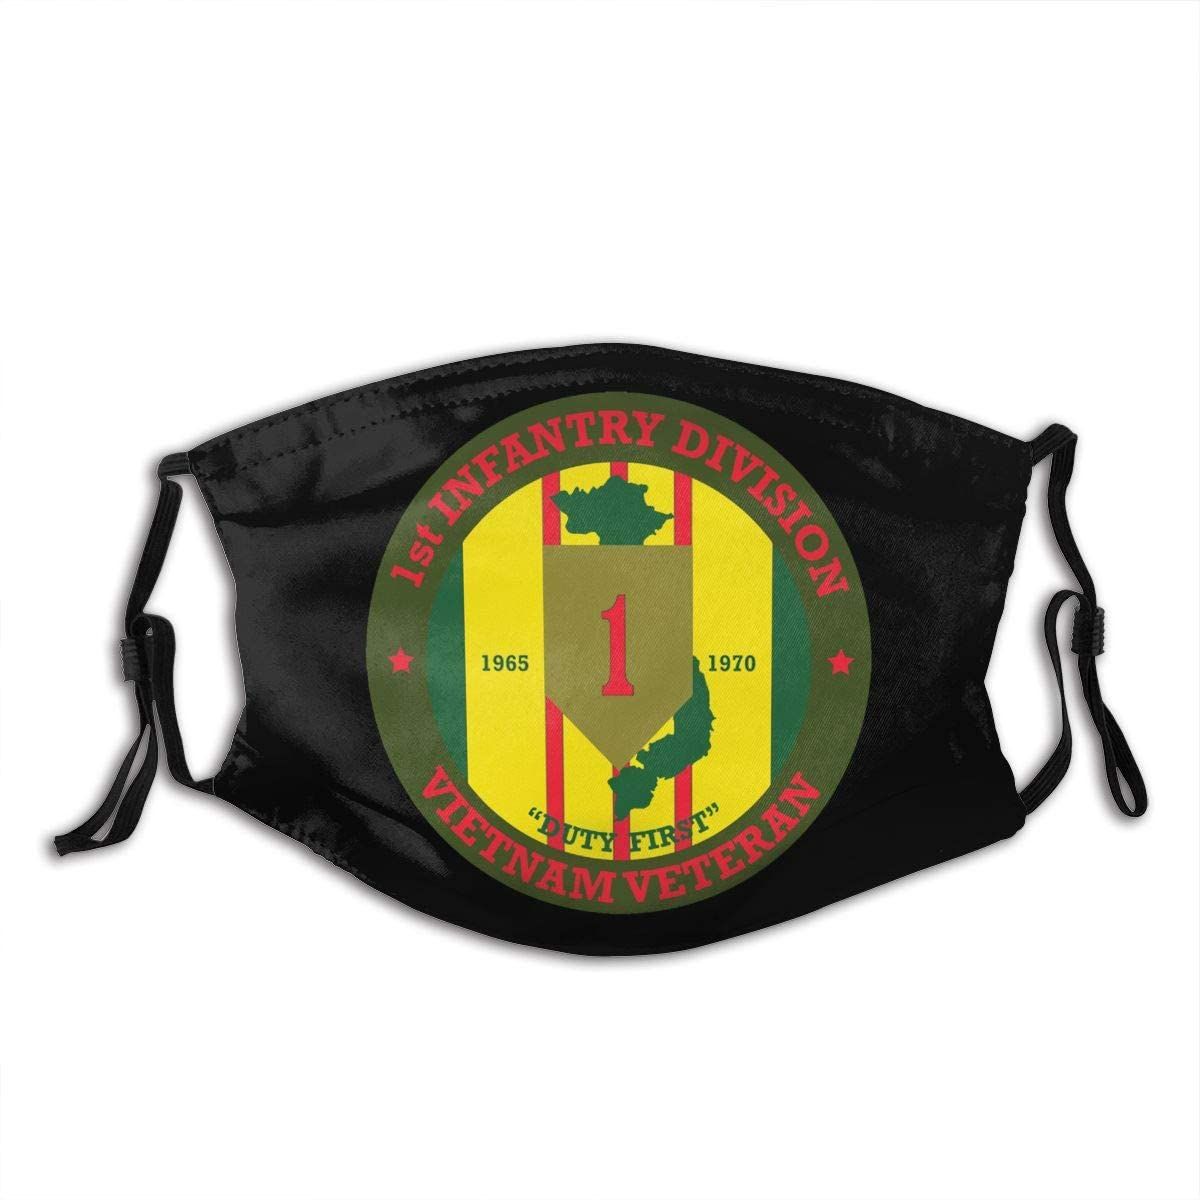 1st Infantry Division Vietnam Veteran Pm2.5 Face Bandanas Dust Scarf,M-Shaped Nose Clip,Equipped With Two Replaceable Activated Carbon Filters Adjustable For Men And Women.